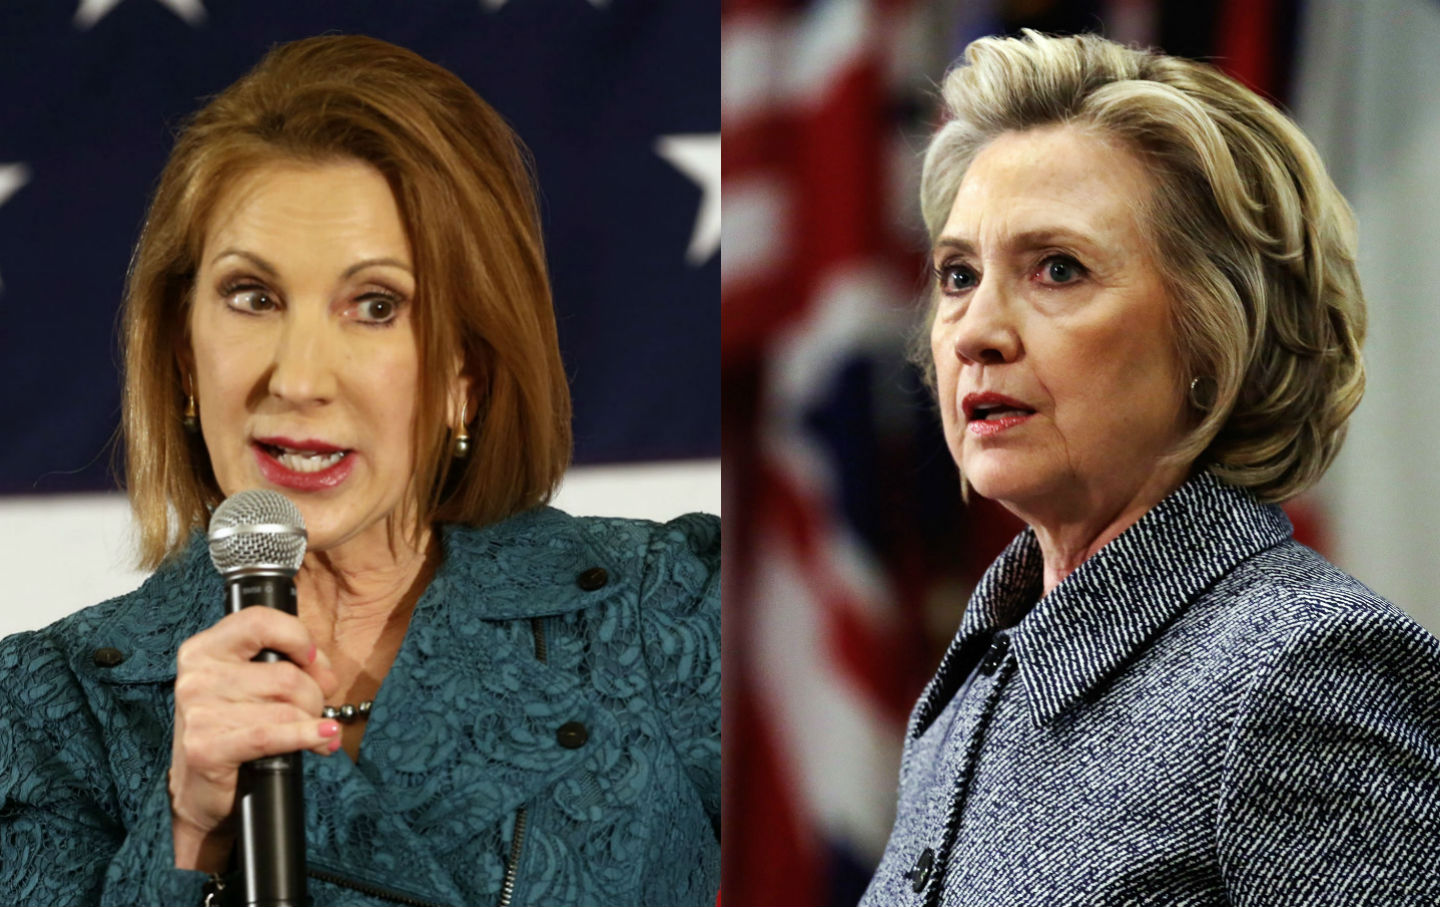 Carly-Fiorina-and-Hillary-Clinton